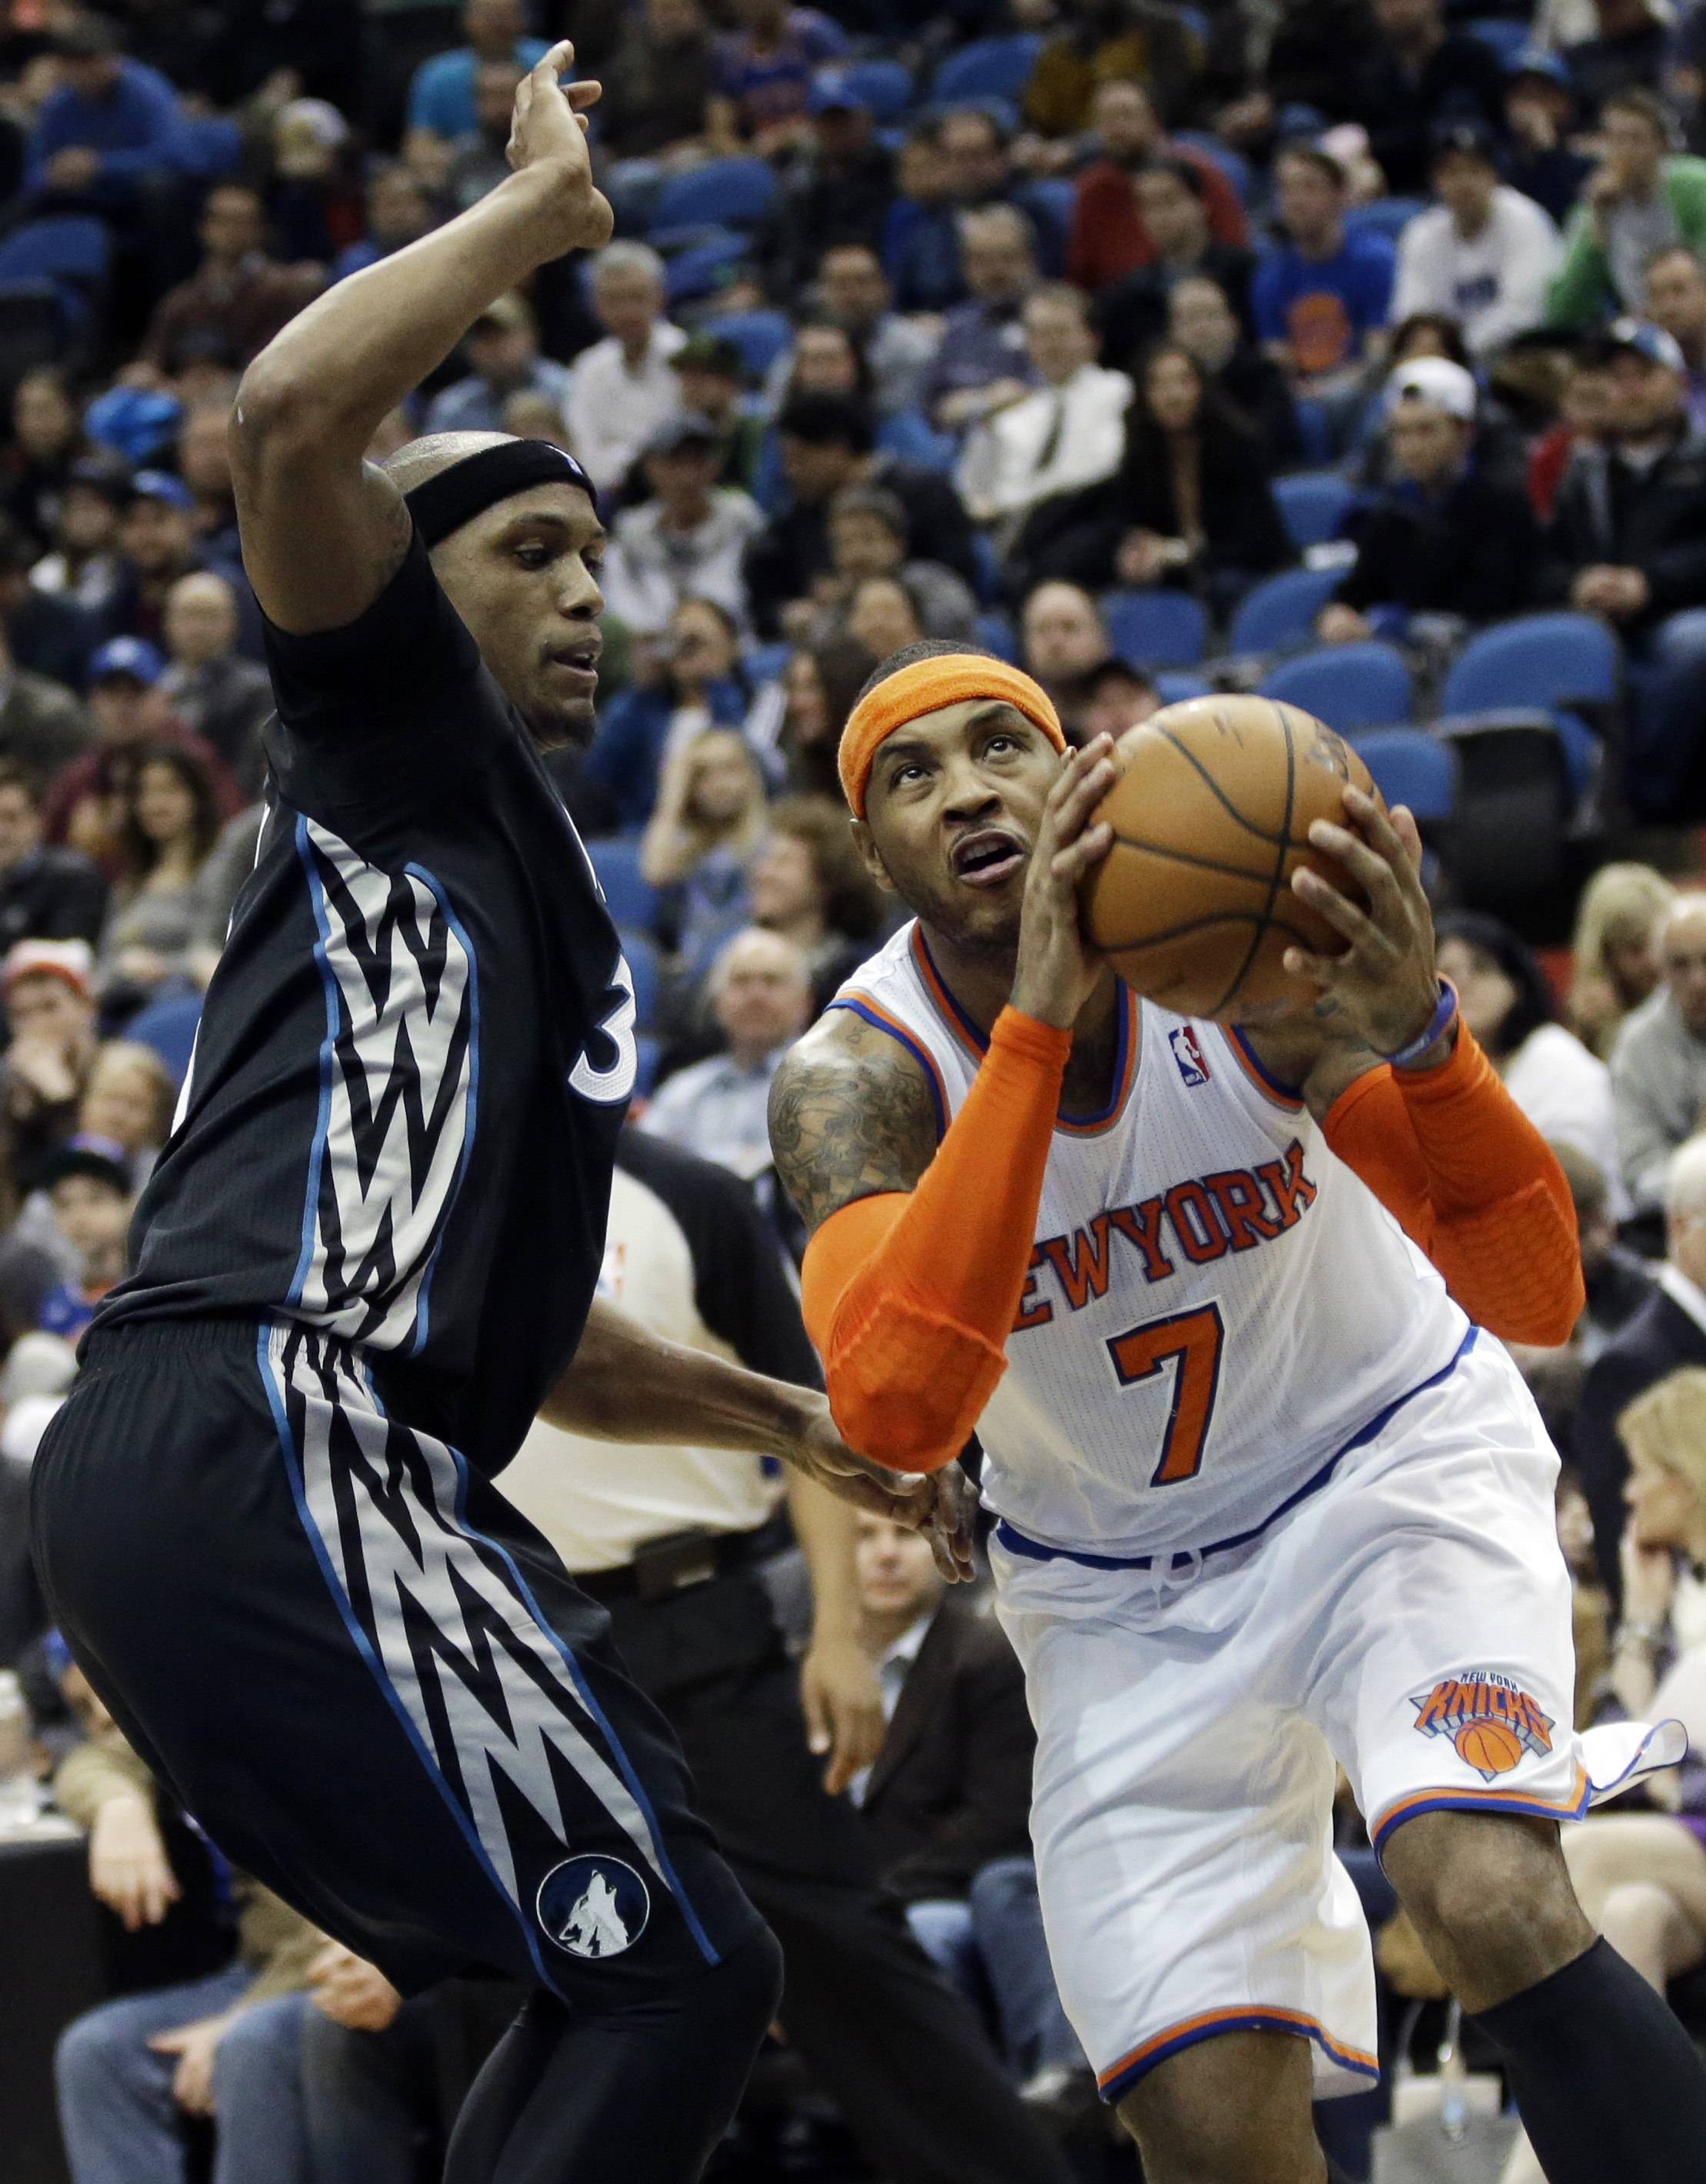 The Knicks' Carmelo Anthony, driving around the Timberwolves' Dante Cunningham on Wednesday, finished with 33 points in New York's 118-106 victory.